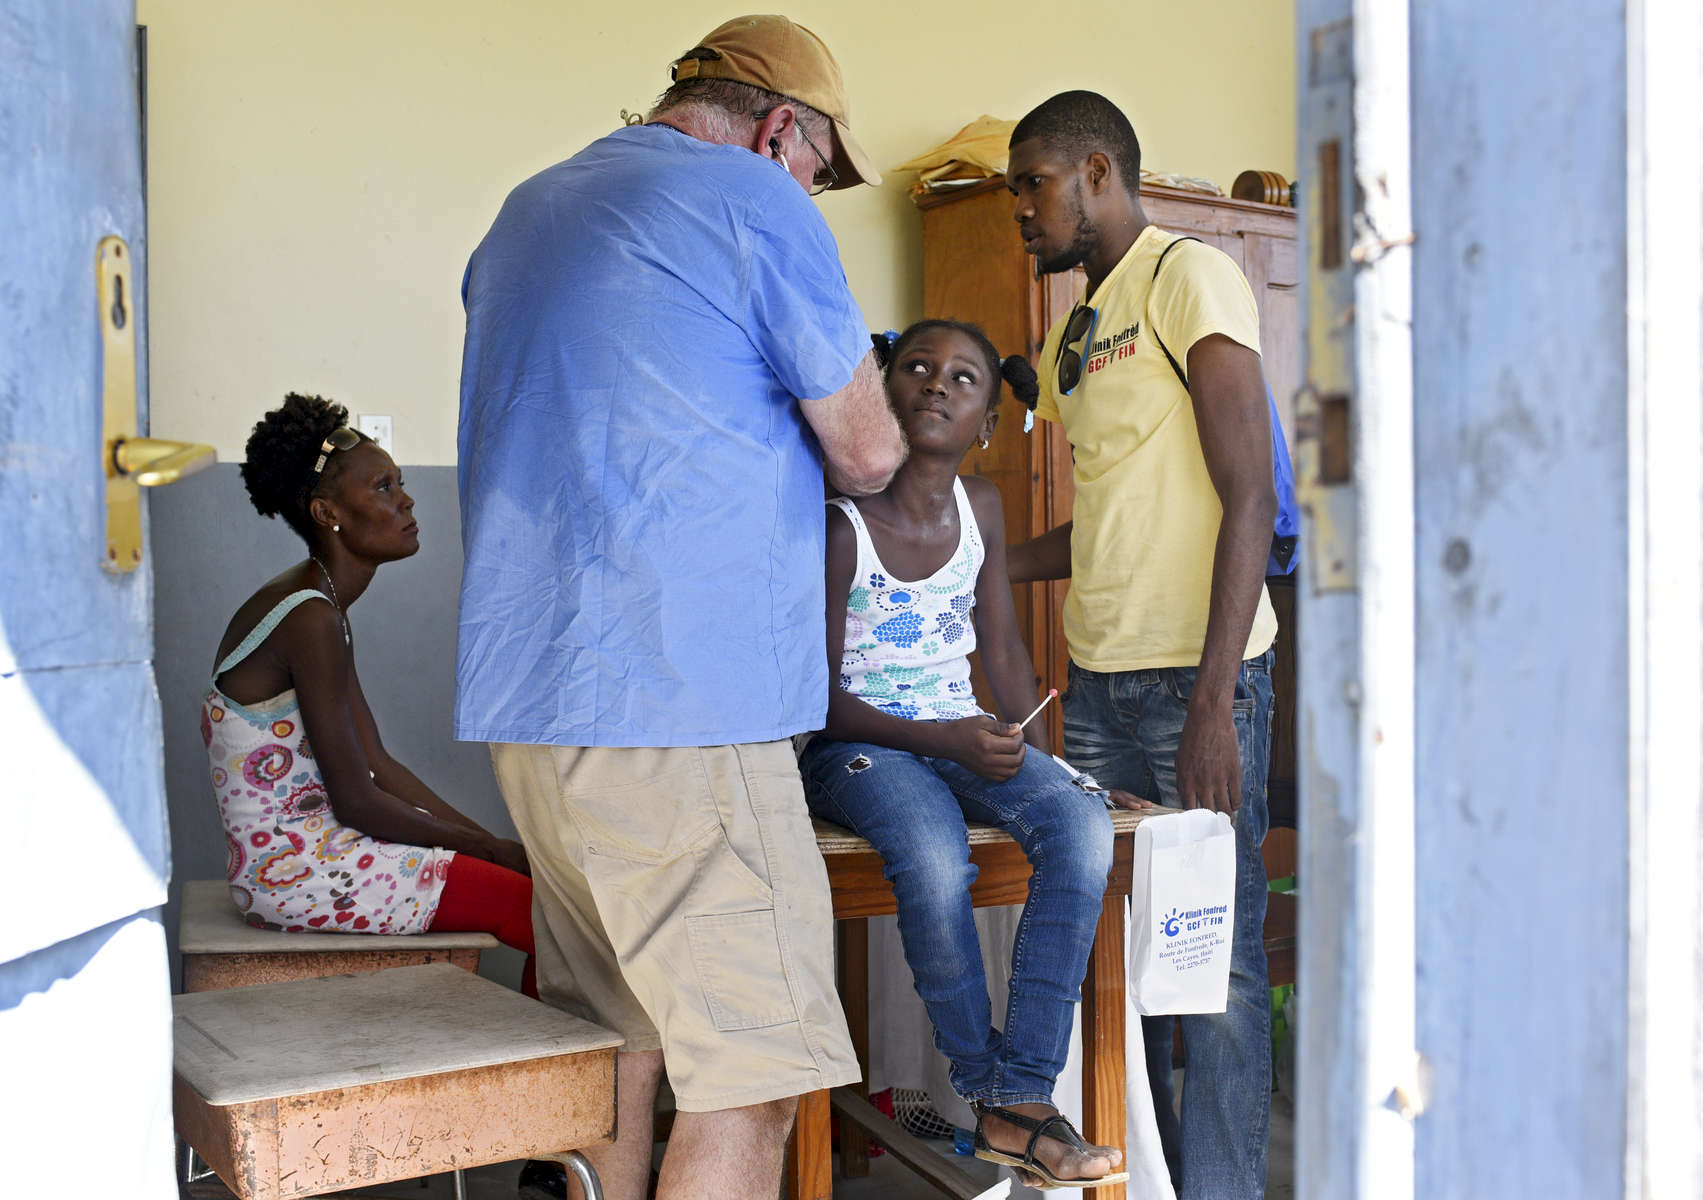 Dr. John Harrington listens to a young patients lungs during a Forward in Health pop-up clinic at the Ecole Presbyteral de Dantan on Wednesday, November 2, 2016.